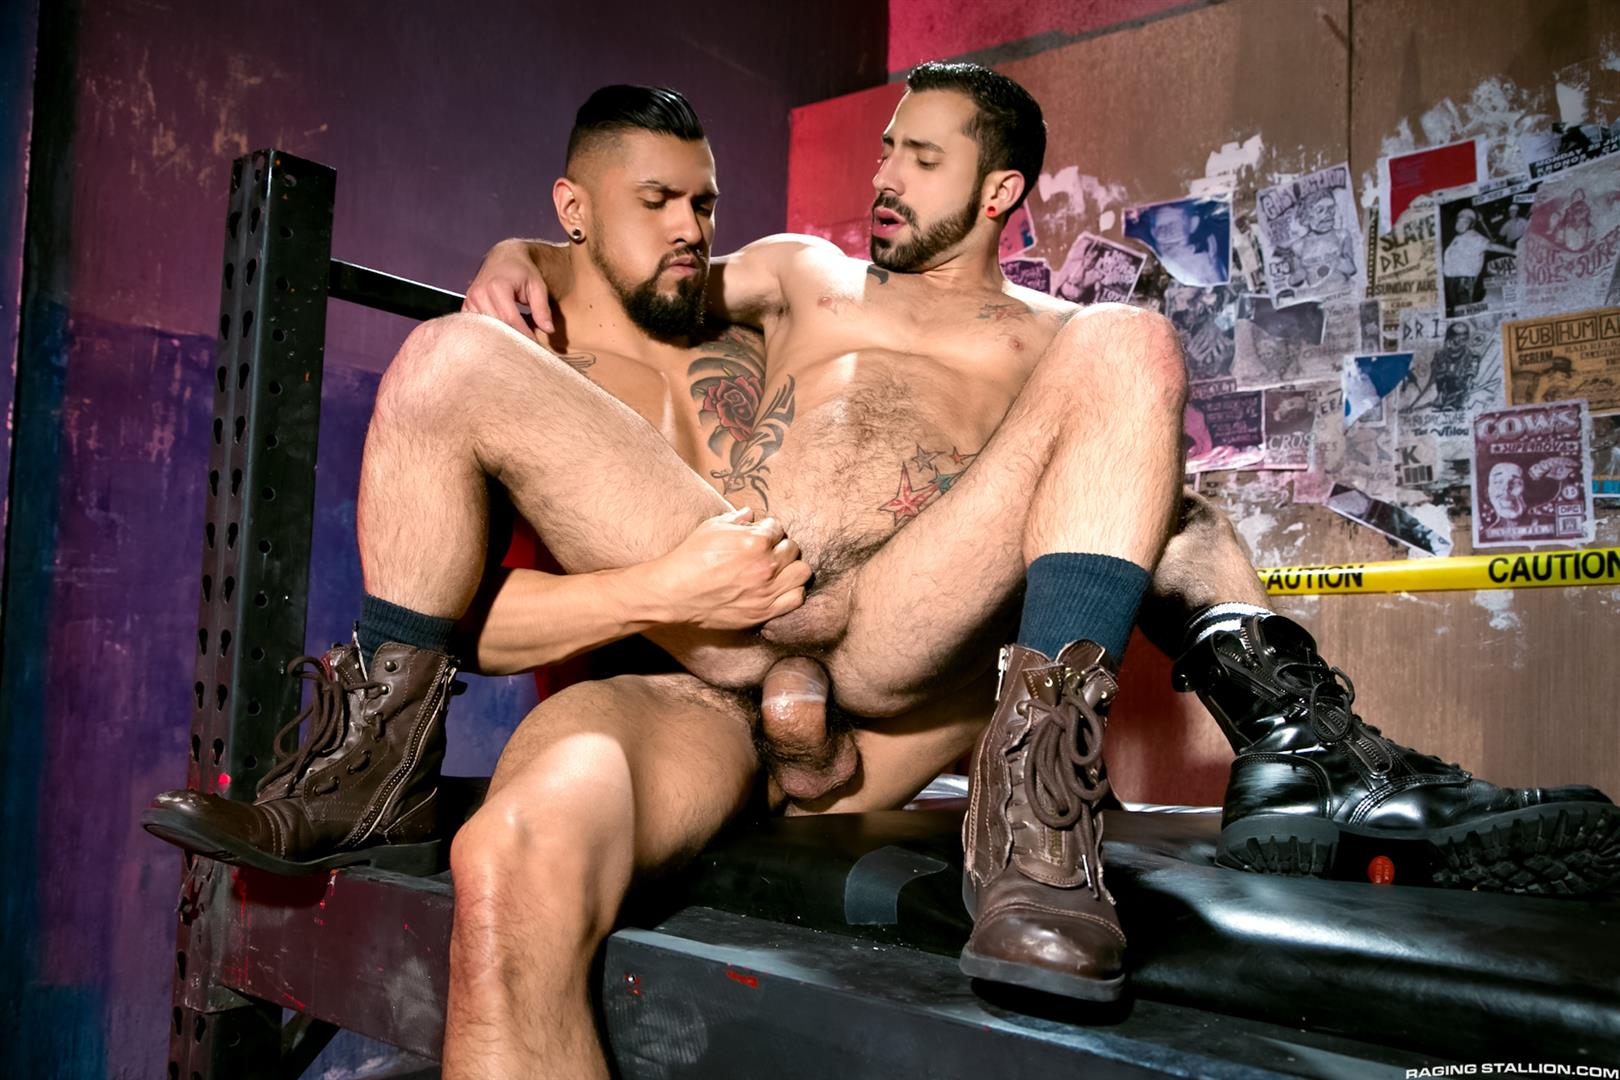 Raging-Stallion-Boomer-Banks-and-Nick-Cross-Huge-Uncut-Cock-Fucking-A-Latino-Ass-Amateur-Gay-Porn-11 Boomer Banks Fucking Nick Cross With His Huge Uncut Cock